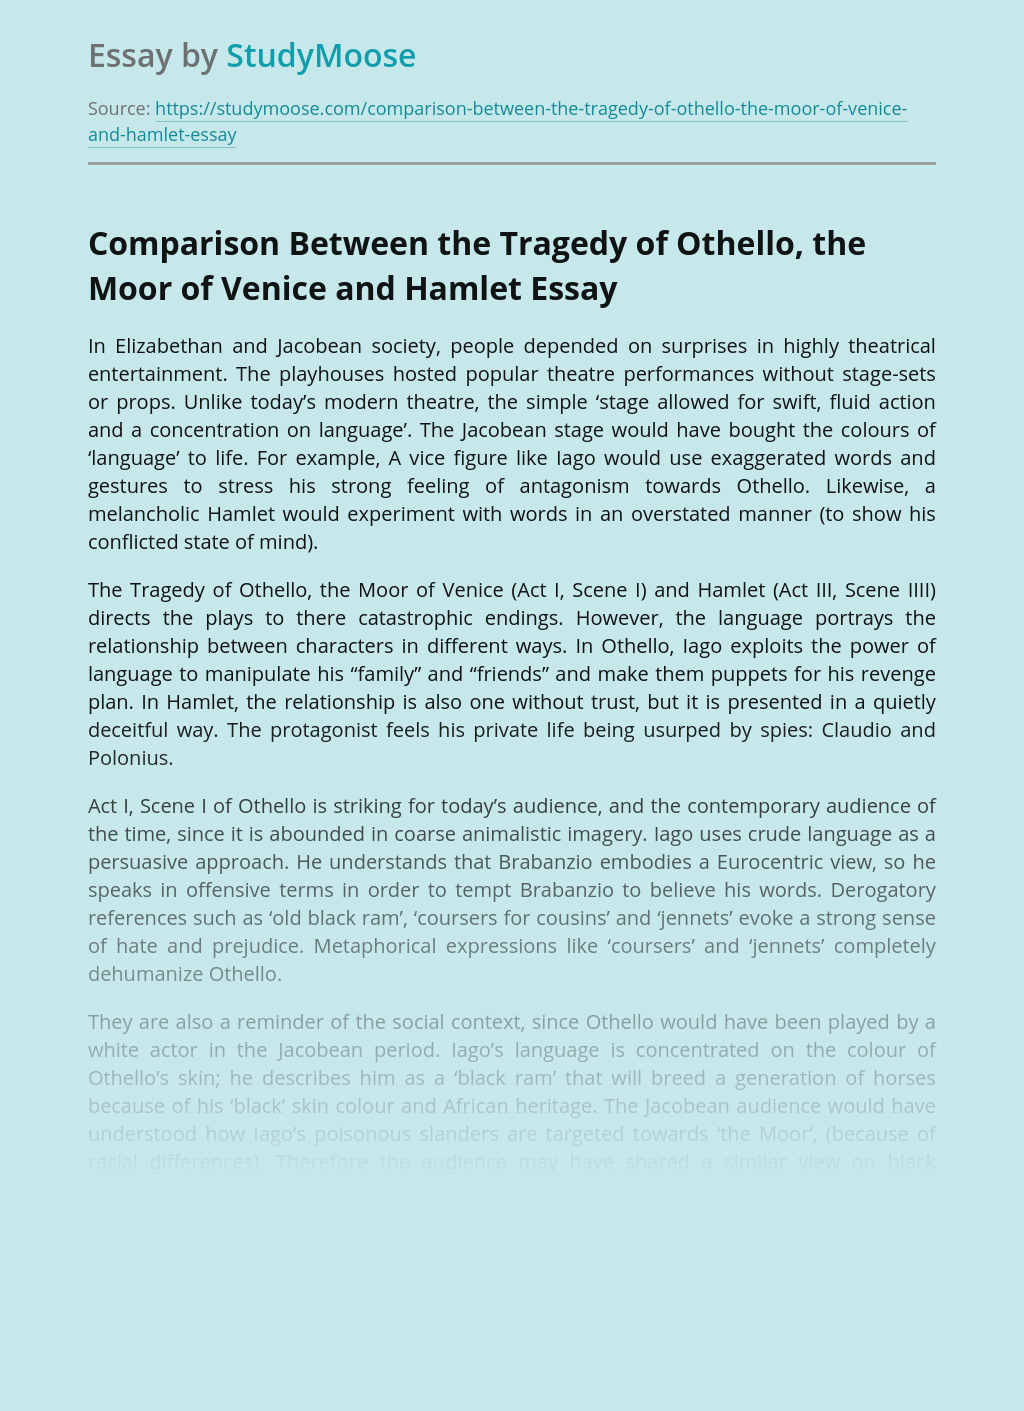 Comparison Between the Tragedy of Othello, the Moor of Venice and Hamlet